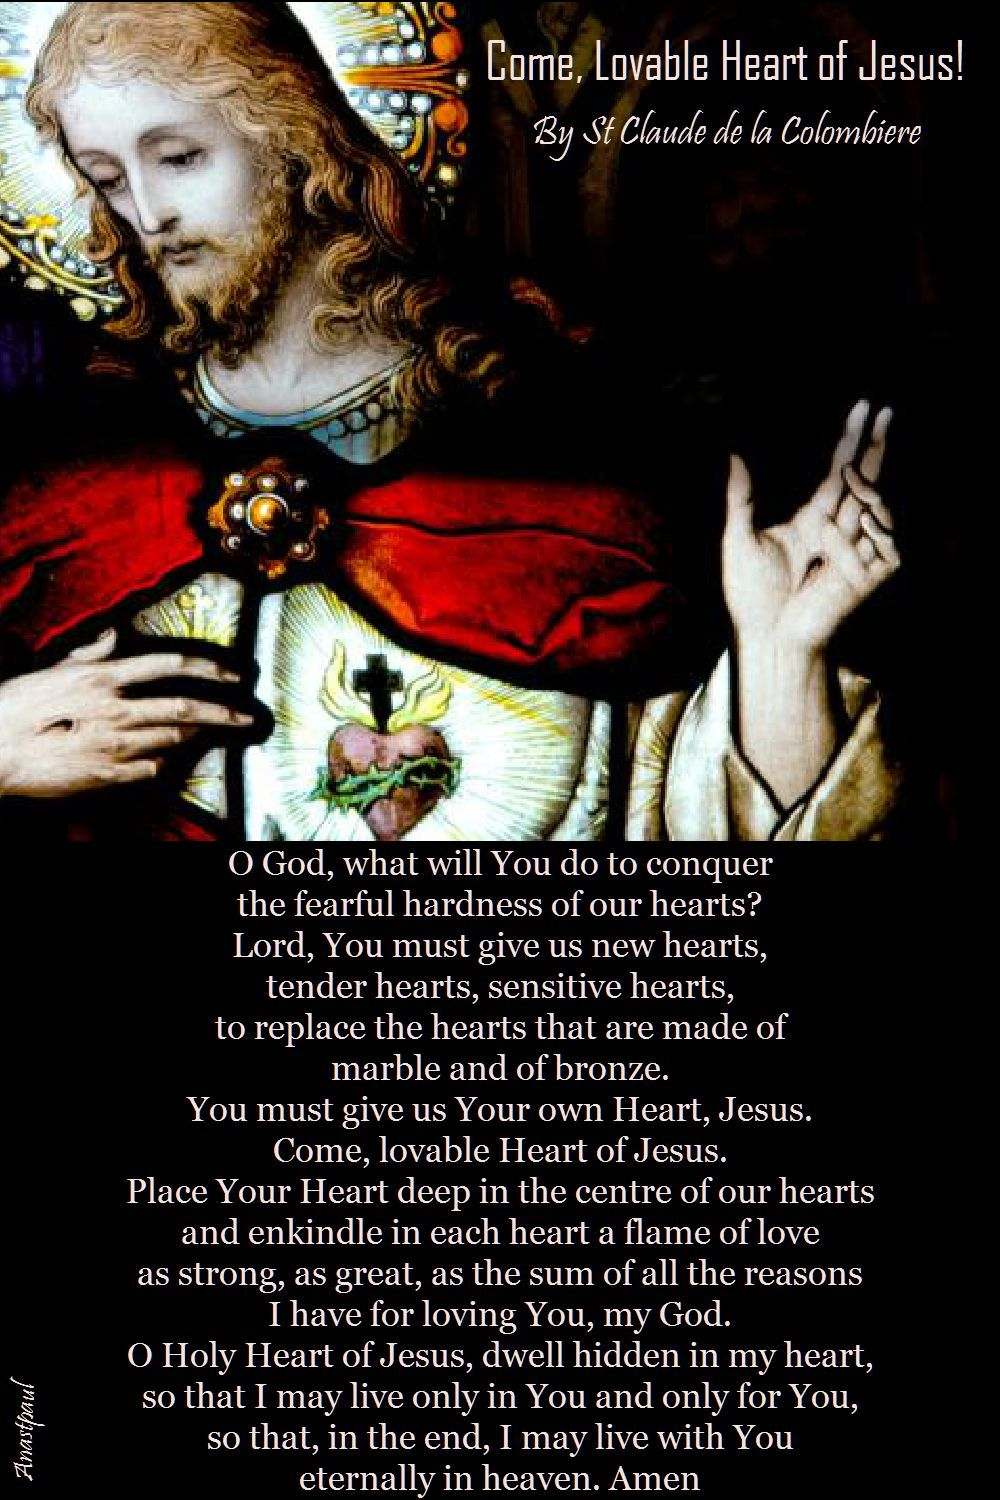 Our Morning Offering – 14 June Come, Lovable Heart of Jesus